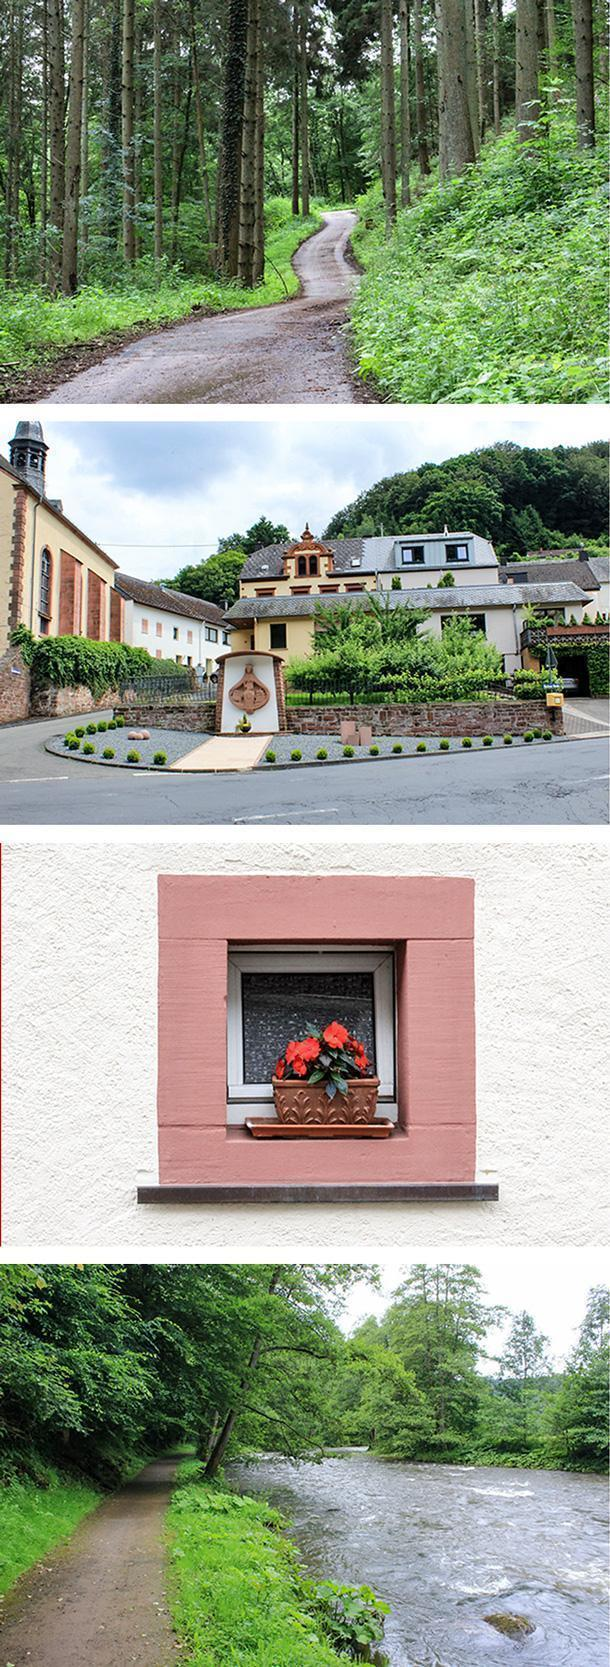 Picturesque Villages and beautiful nature are commonplace in Eifel.